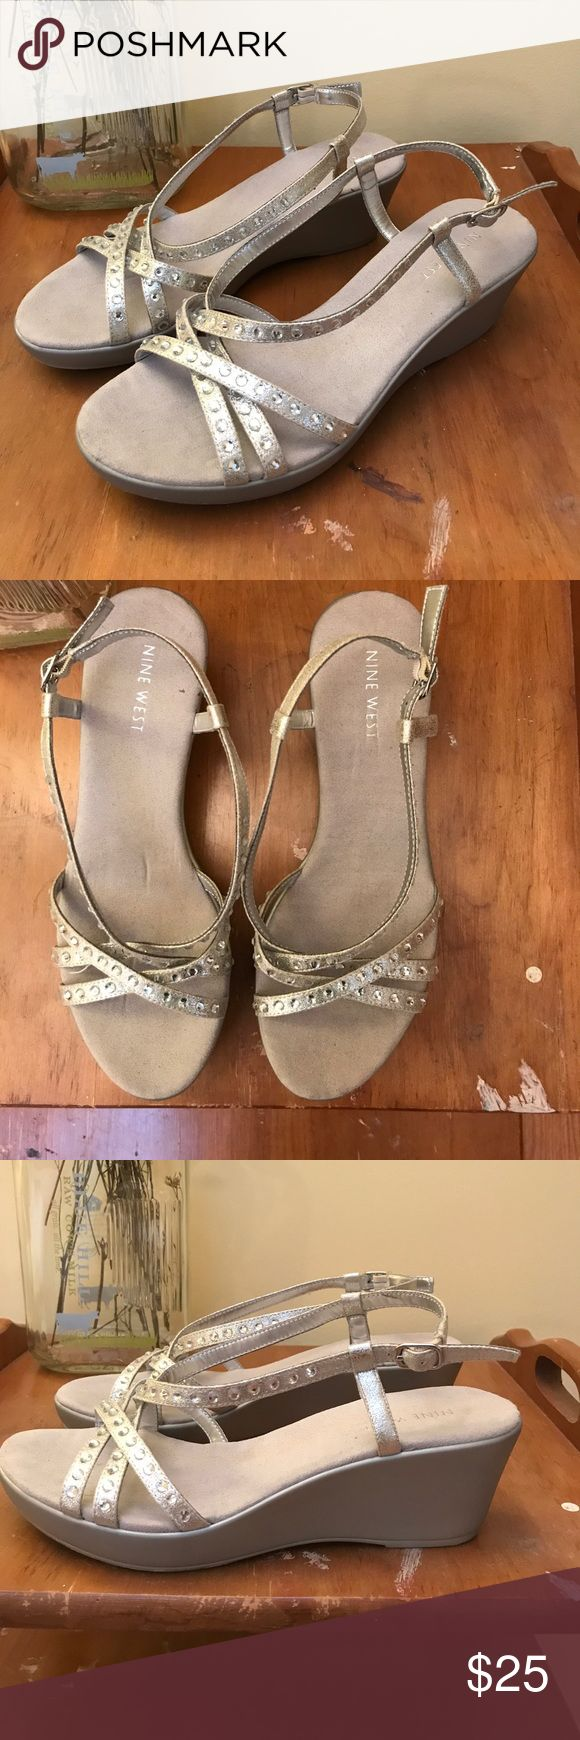 Sparkly silver wedge sandals You can dance the night away with the sparkly silver Easy Spirit wedge sandals. Some signs of wear on the bottom but none on the shoe itself. Worn a few times. Easy Spirit Shoes Platforms